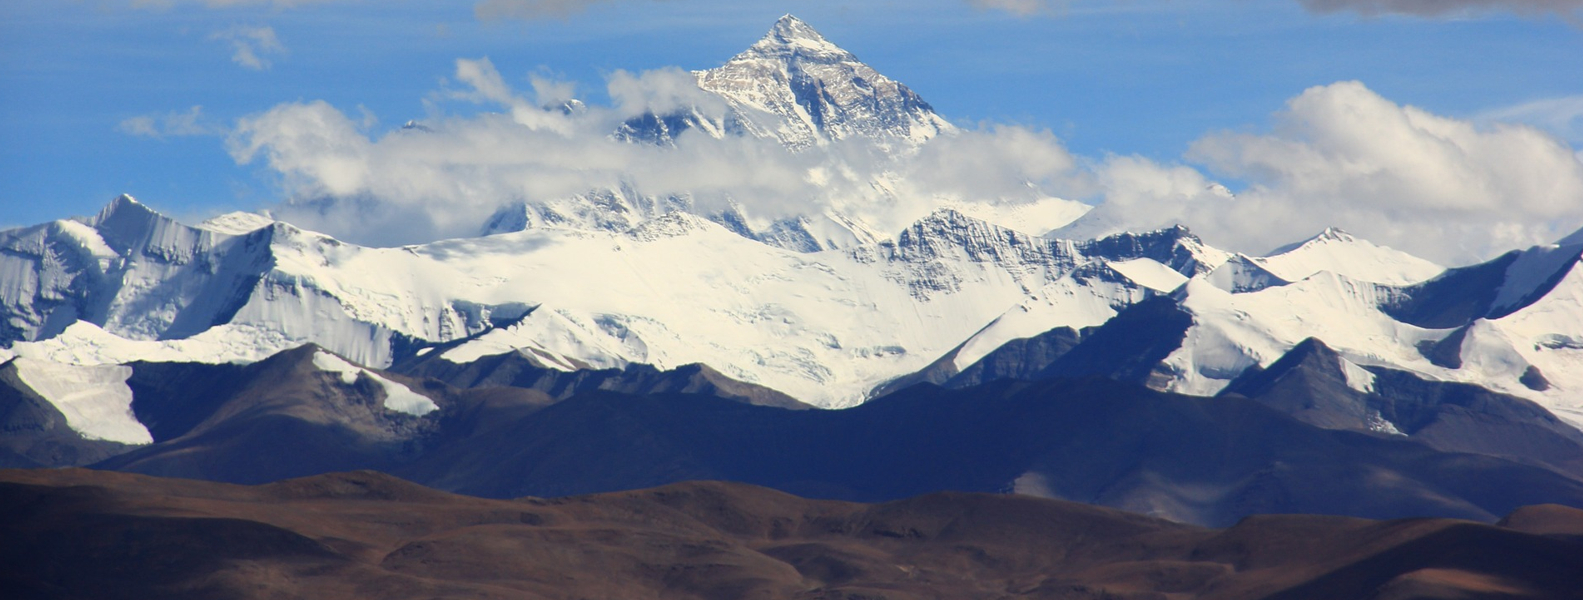 mount-everest-lobina